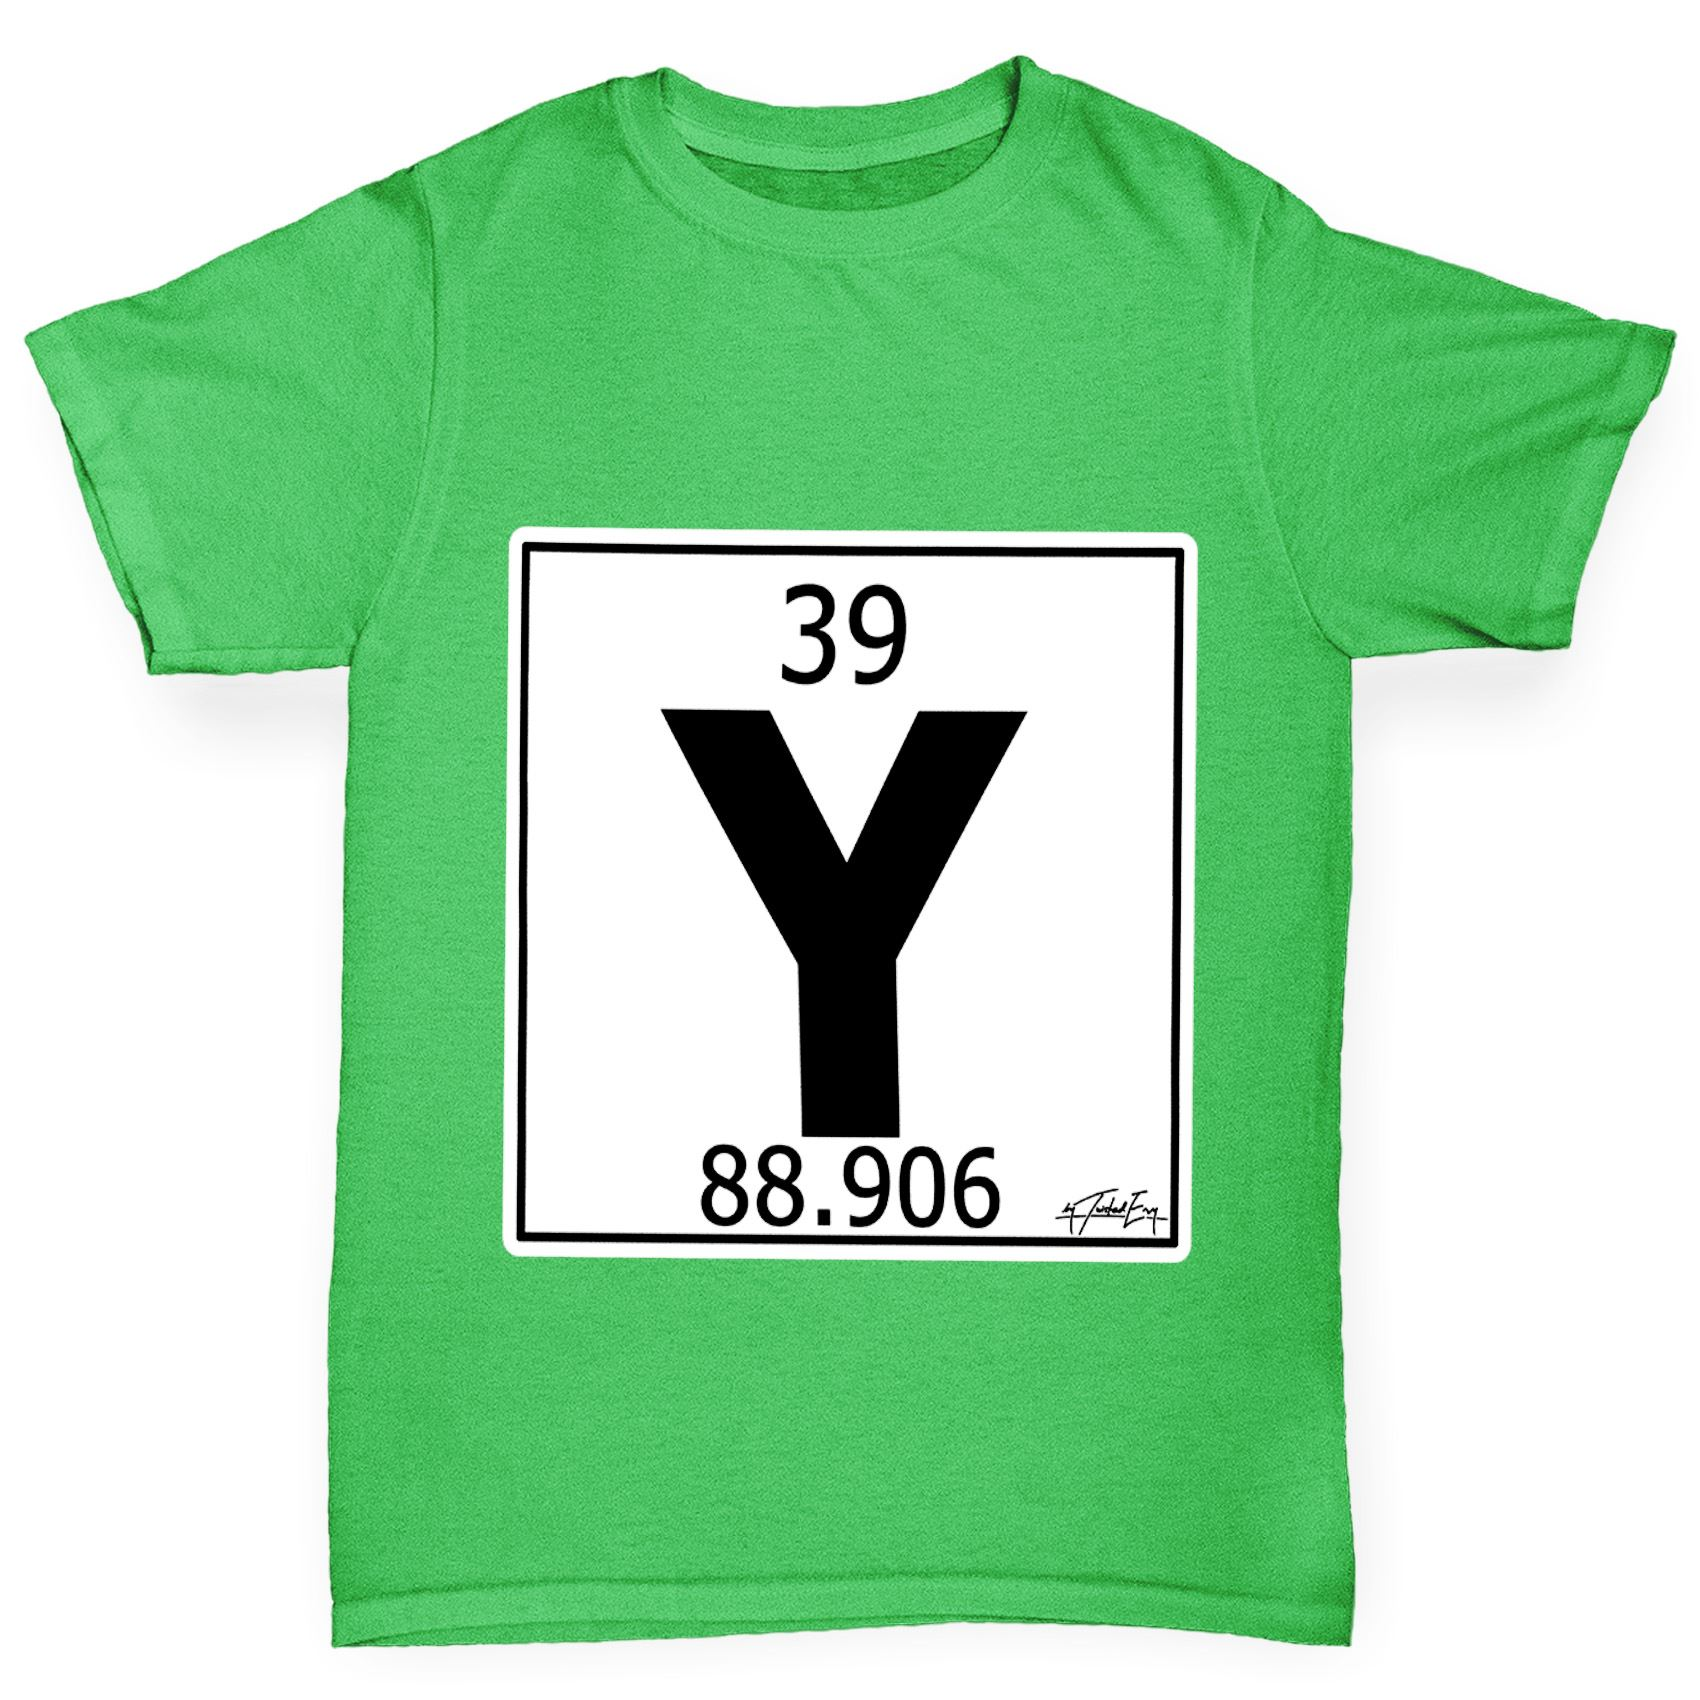 Twisted envy boys periodic table element y yttrium t shirt ebay twisted envy boy 039 s periodic table element urtaz Images